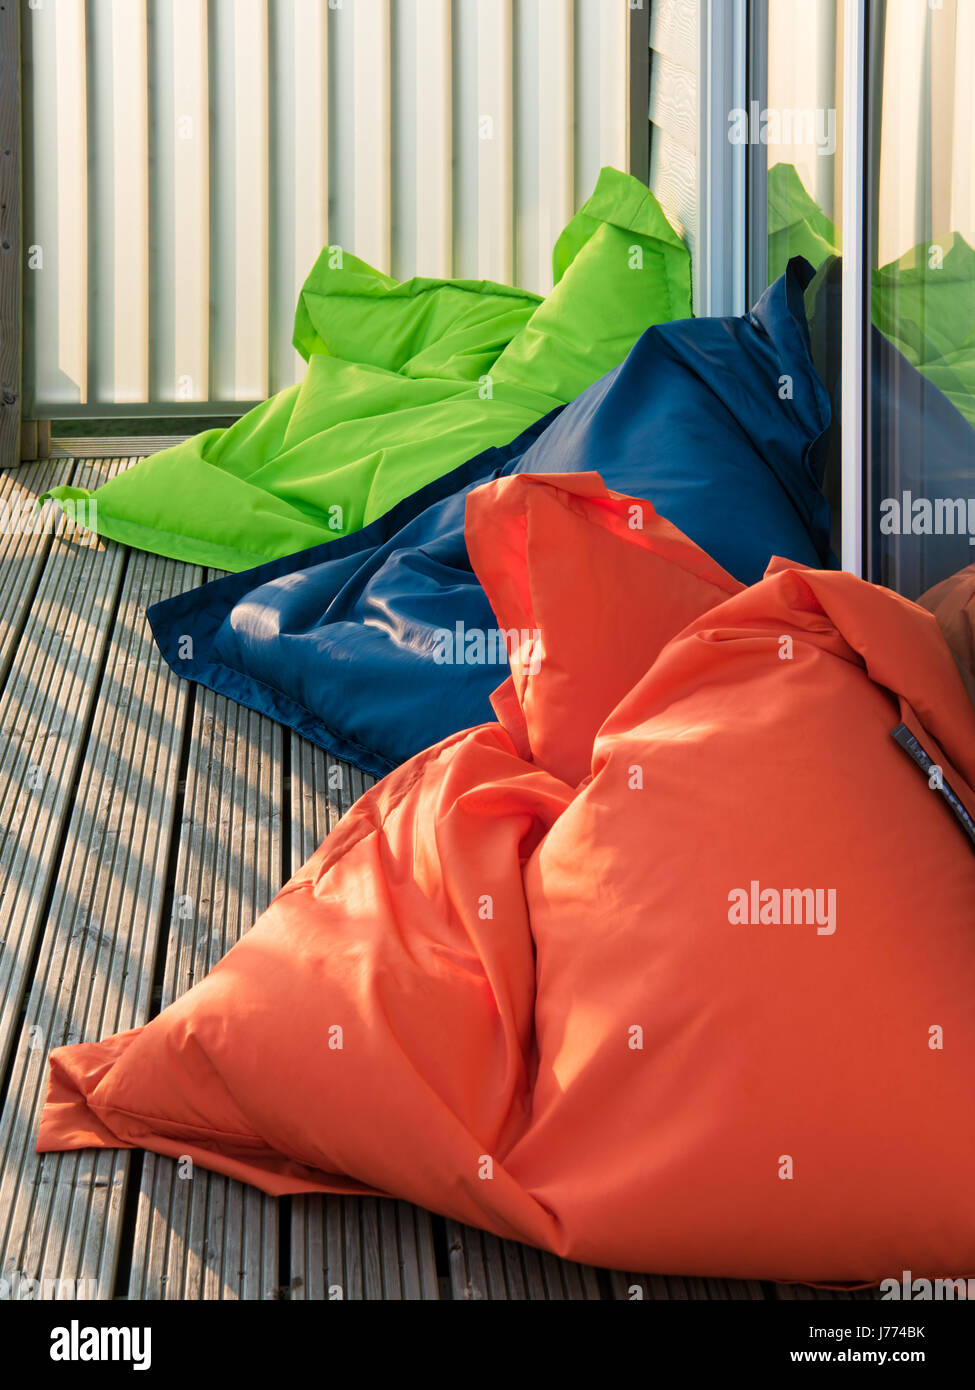 Brightly coloured bean bags on the wooden balcony - Stock Image